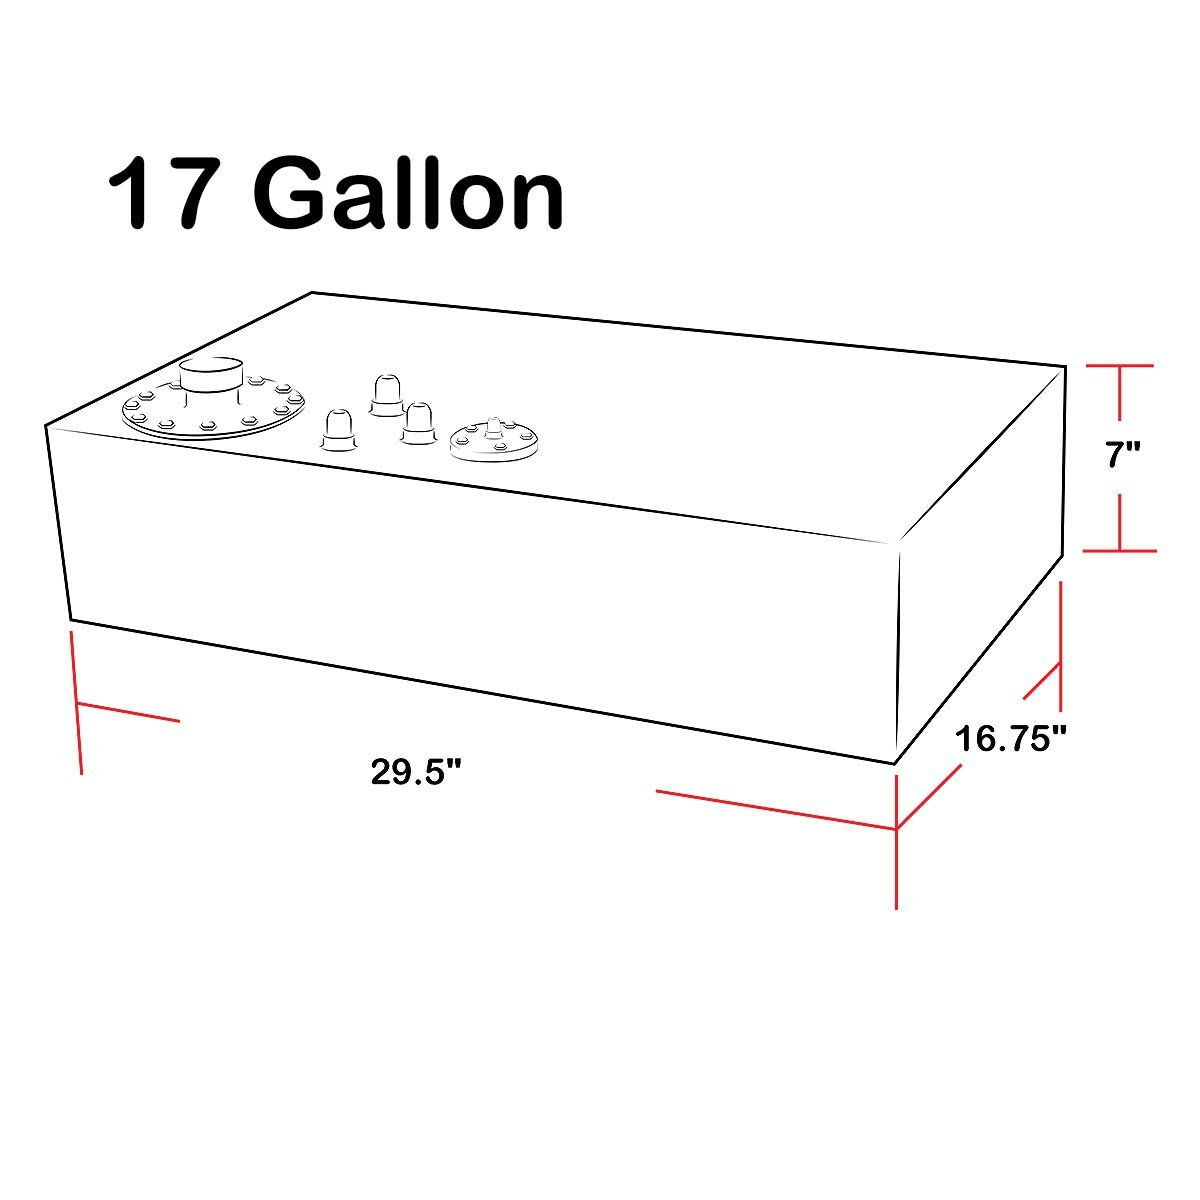 17-Gallon/64-Liter Top-Feed Aluminum Fuel Cell Gas Tank w/Level